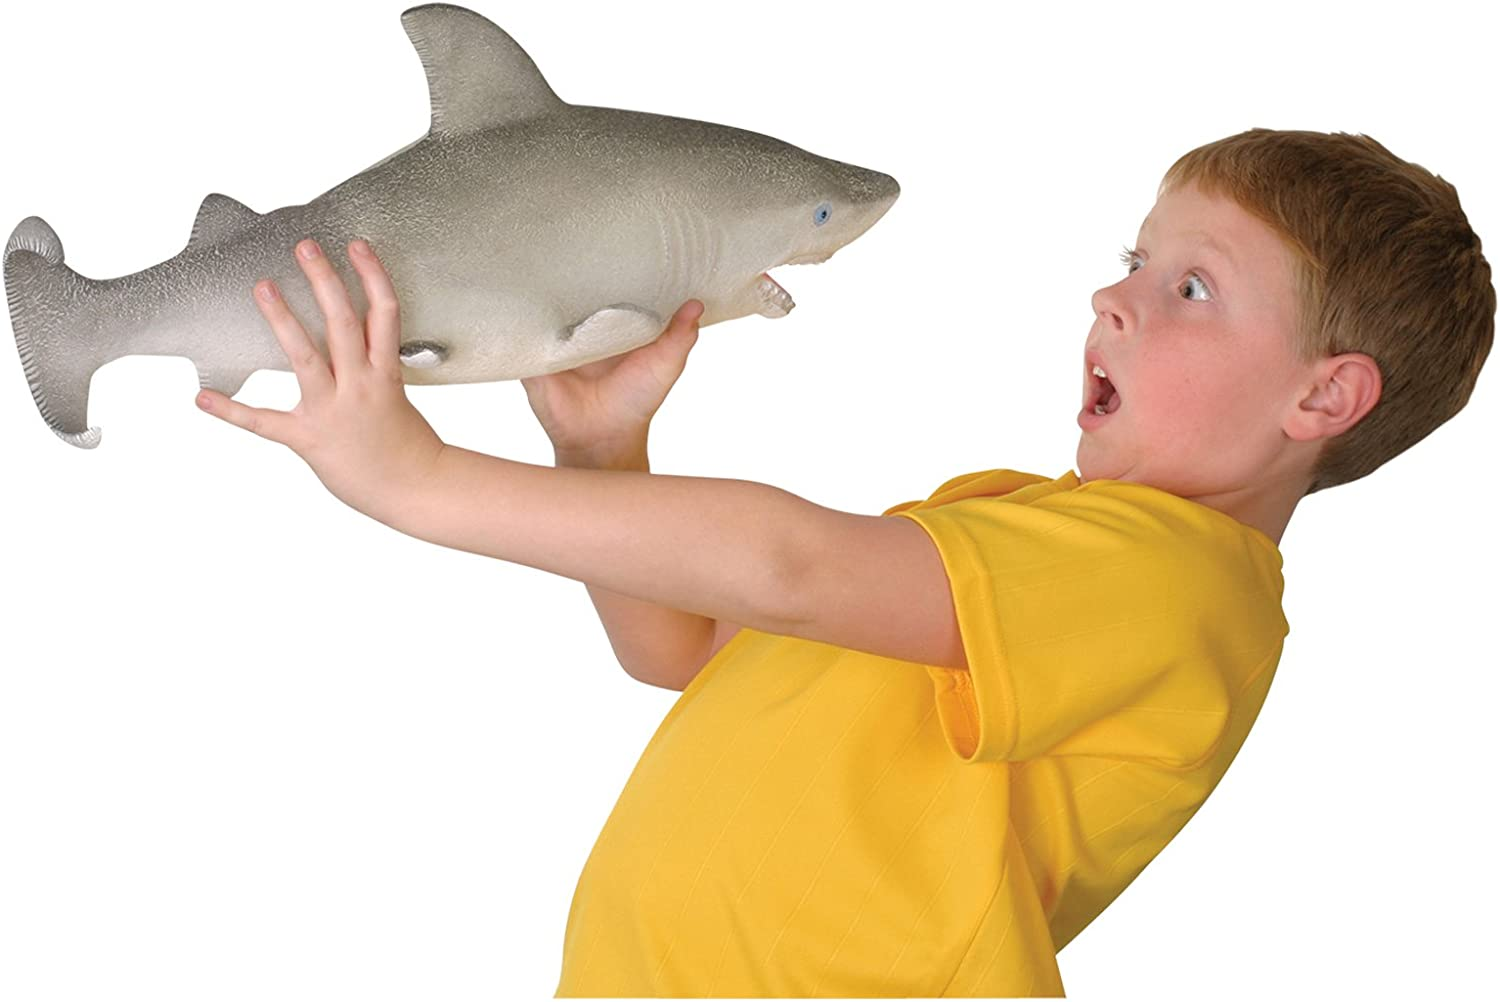 Ginormous Grow Shark Toy, Just Add Water! (Assorted Colors)